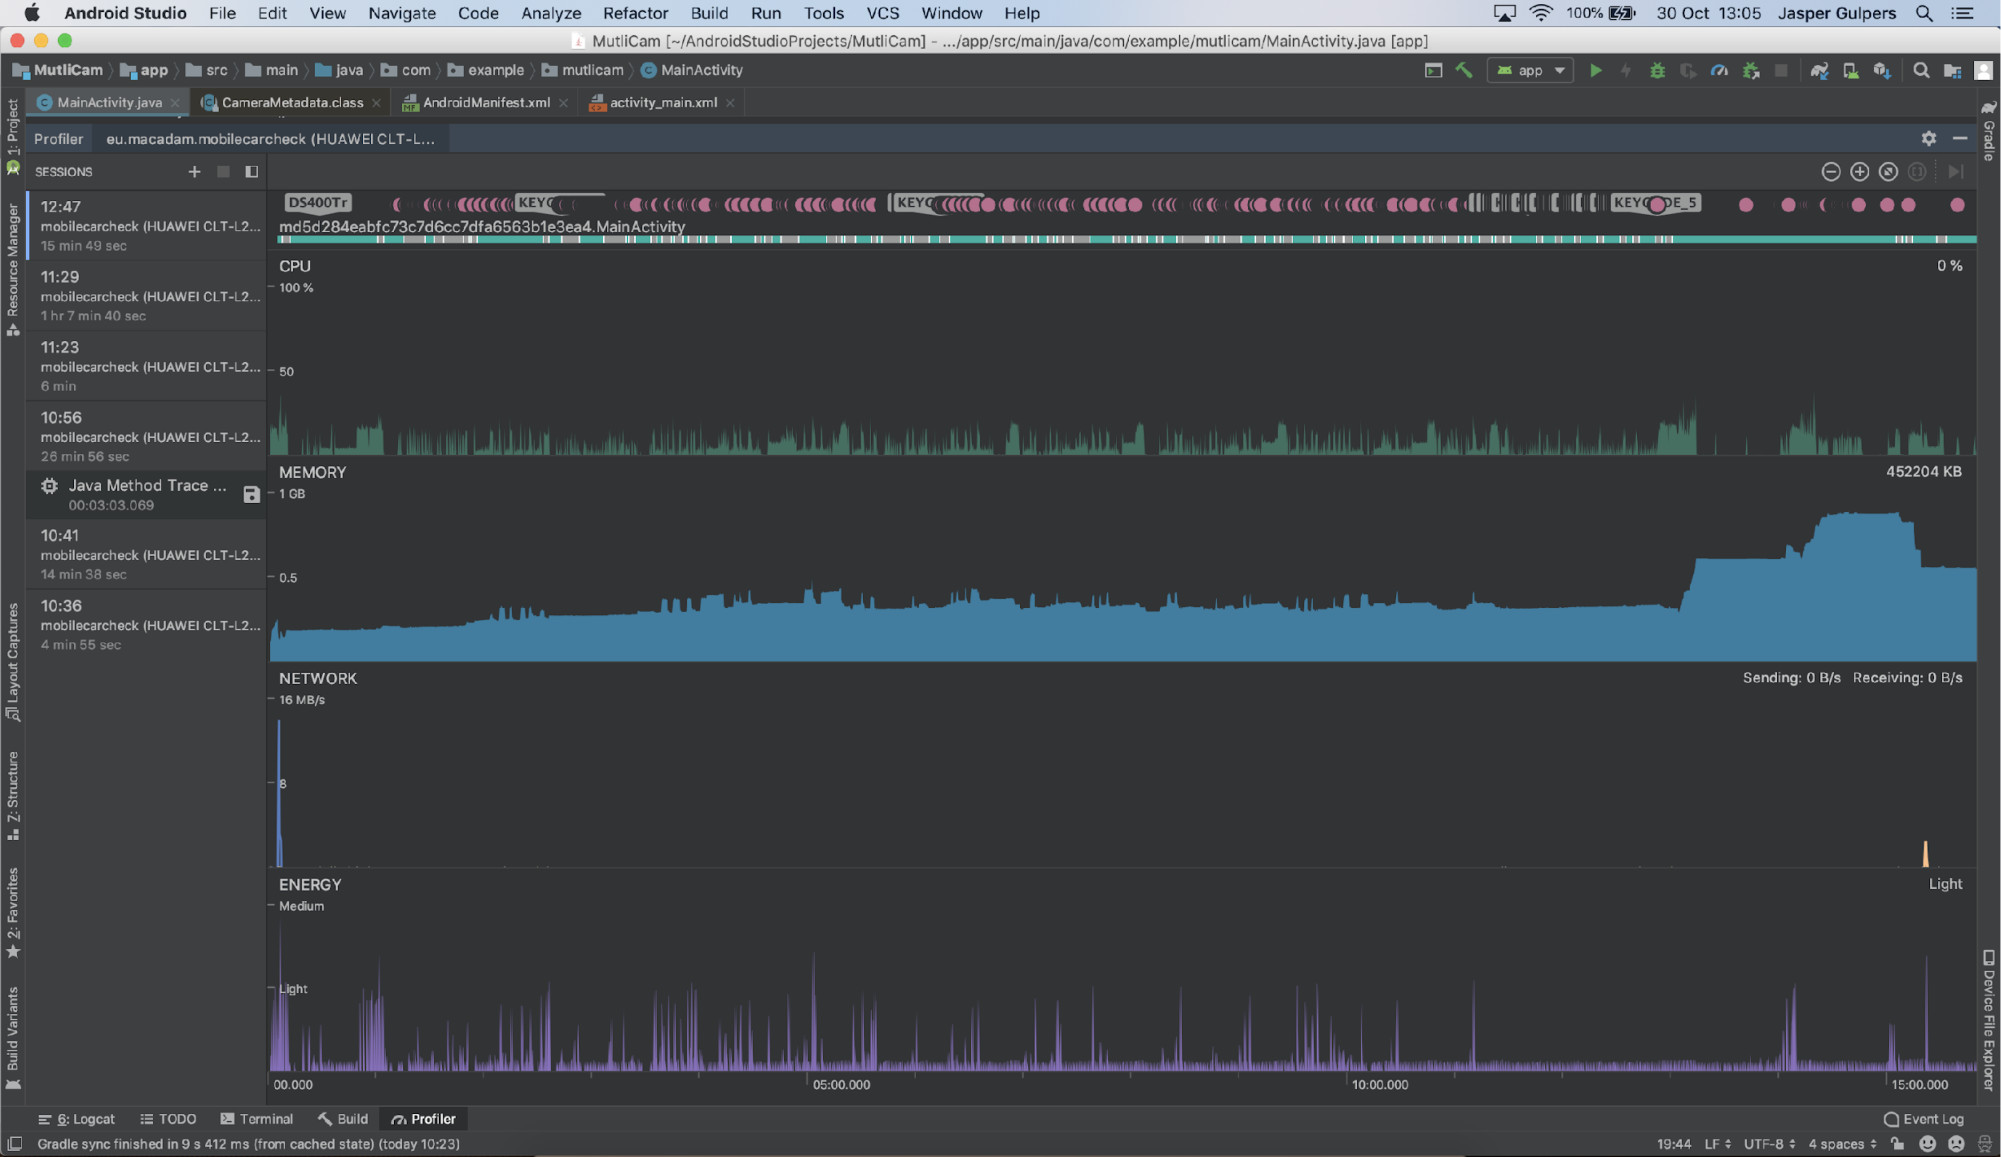 Android studio interface